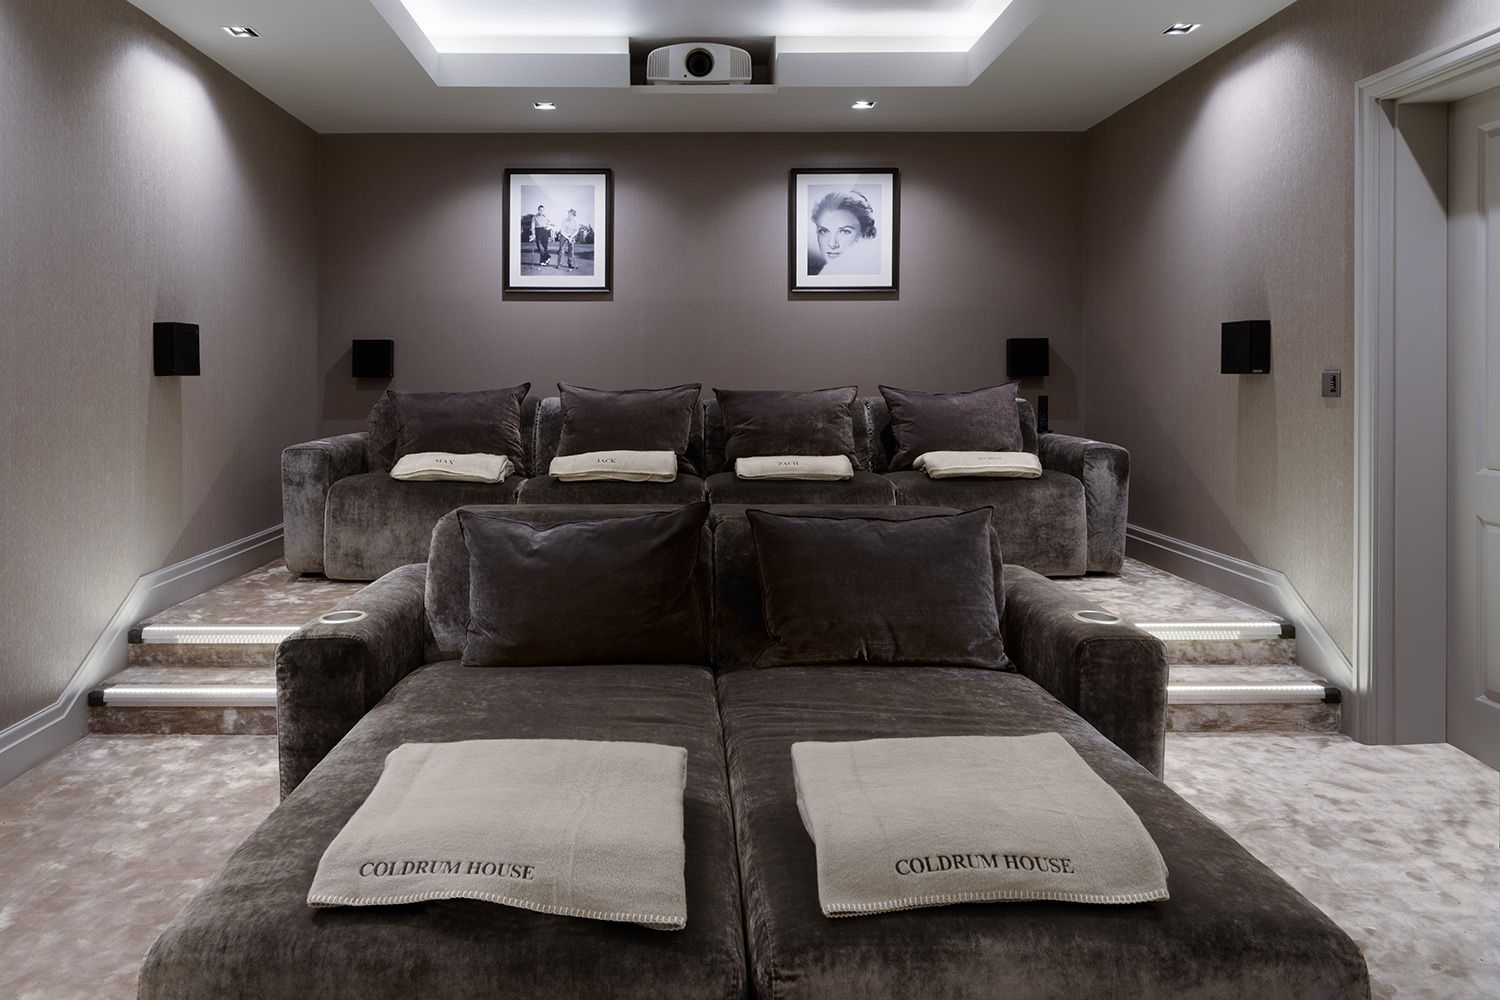 Luxury Home Theatre With Some Rather Special Home Cinema Seating All These Seats Are Recliner